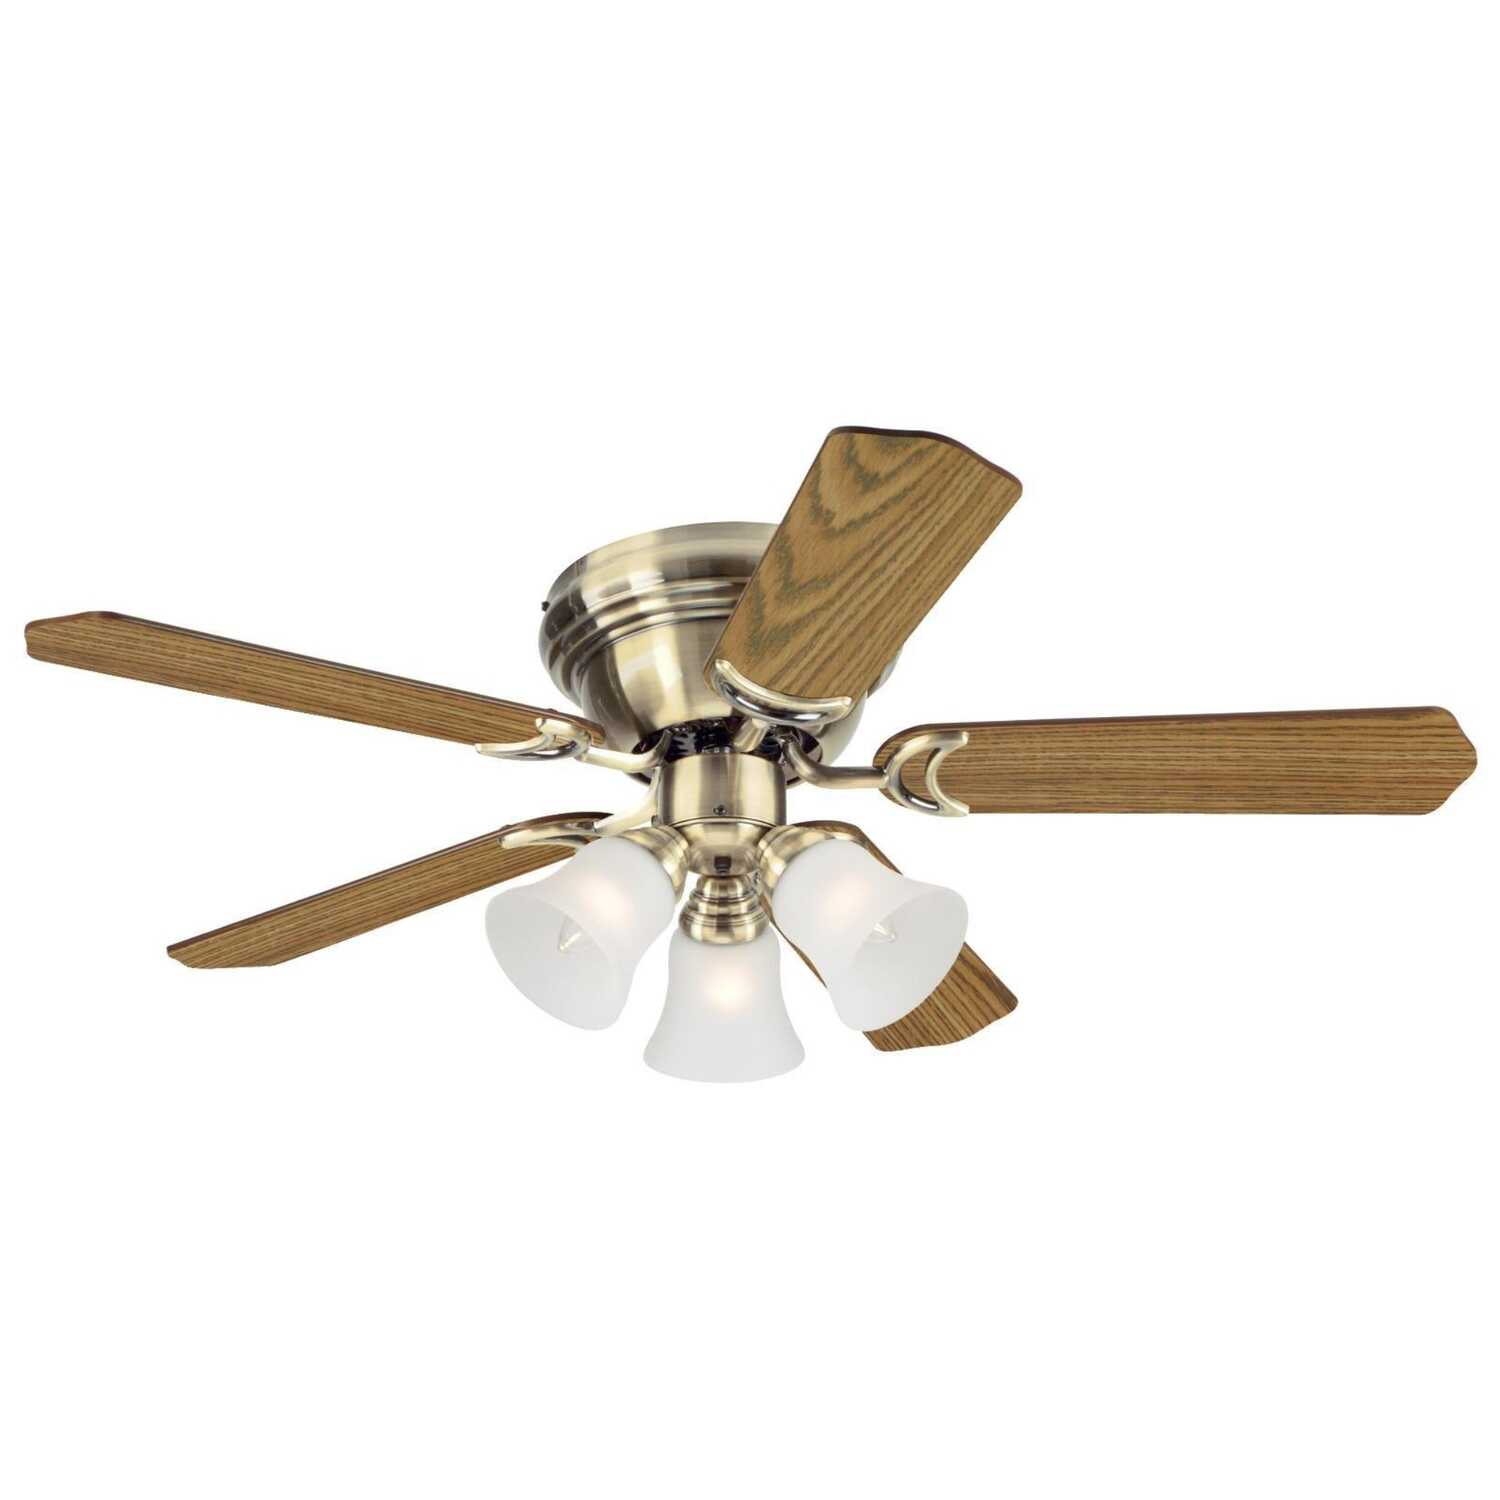 Westinghouse Contempra Trio 17 5 Blade Indoor 42 In W Ceiling Fan 12 Foot Swag Light Kit Chain By Electric New Antique Brass